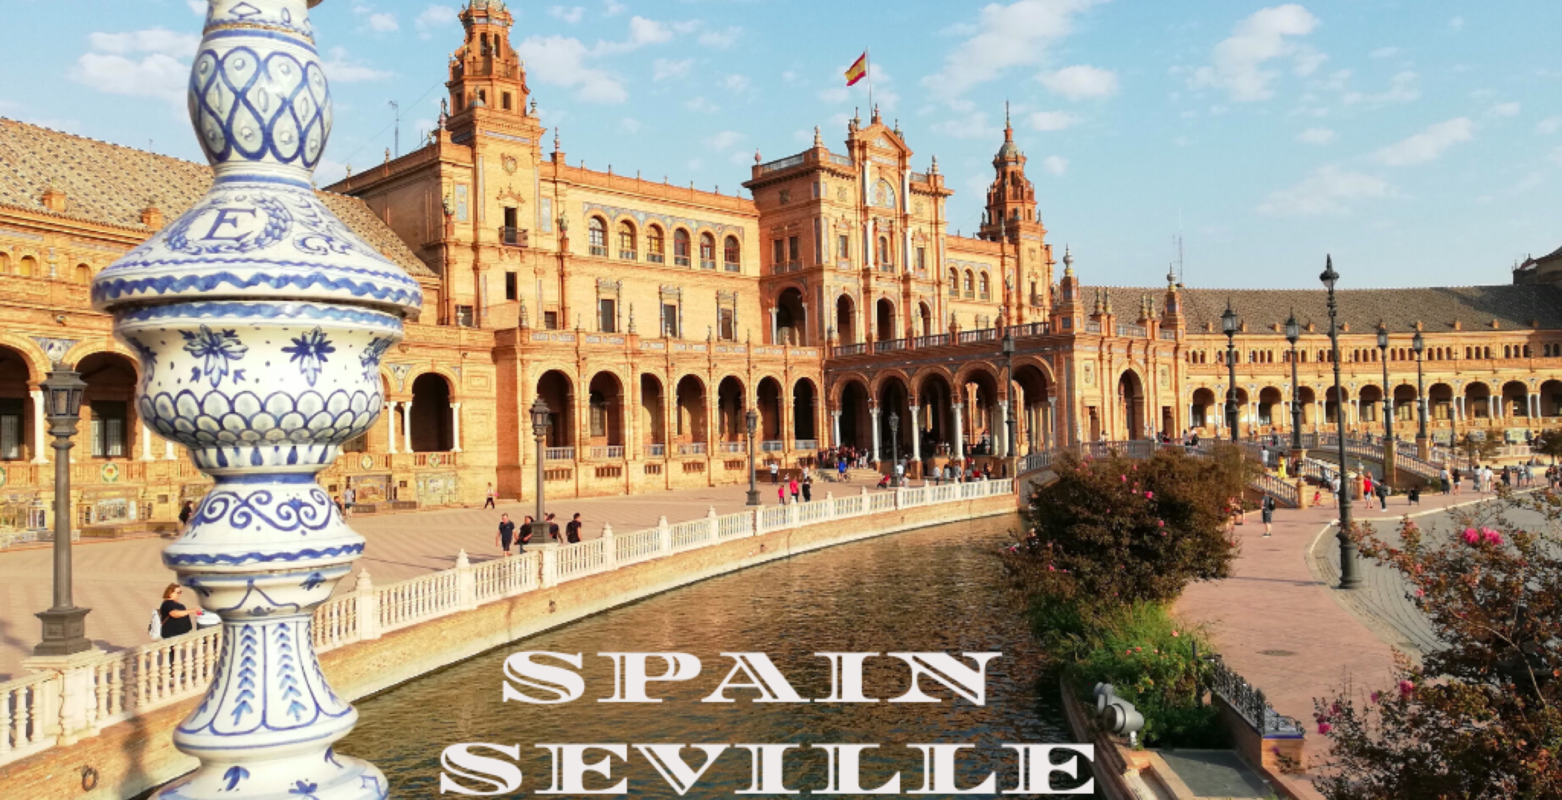 Seville – love at first sight